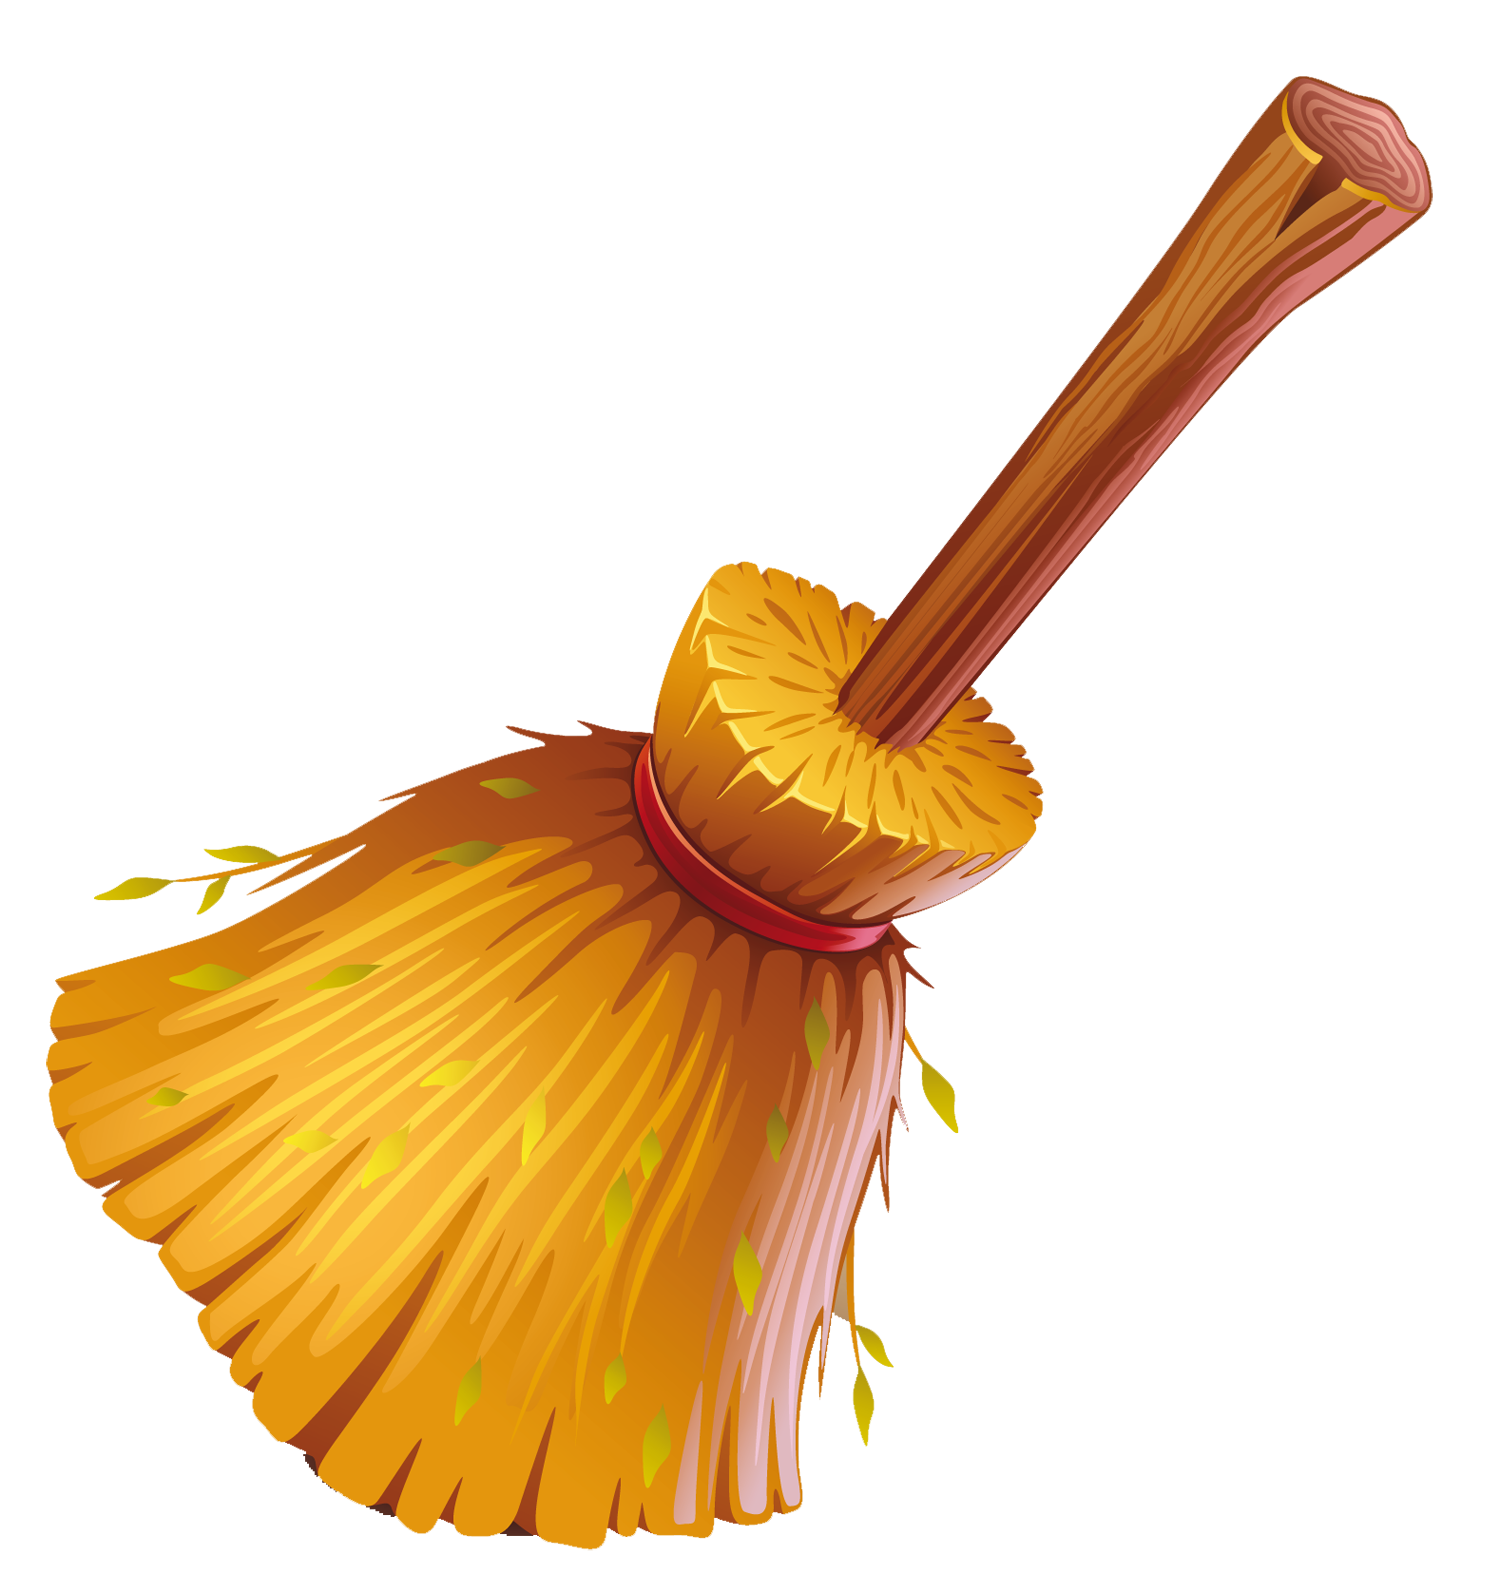 Clean clipart broom. Golden ner tamid goldenbroomclipart